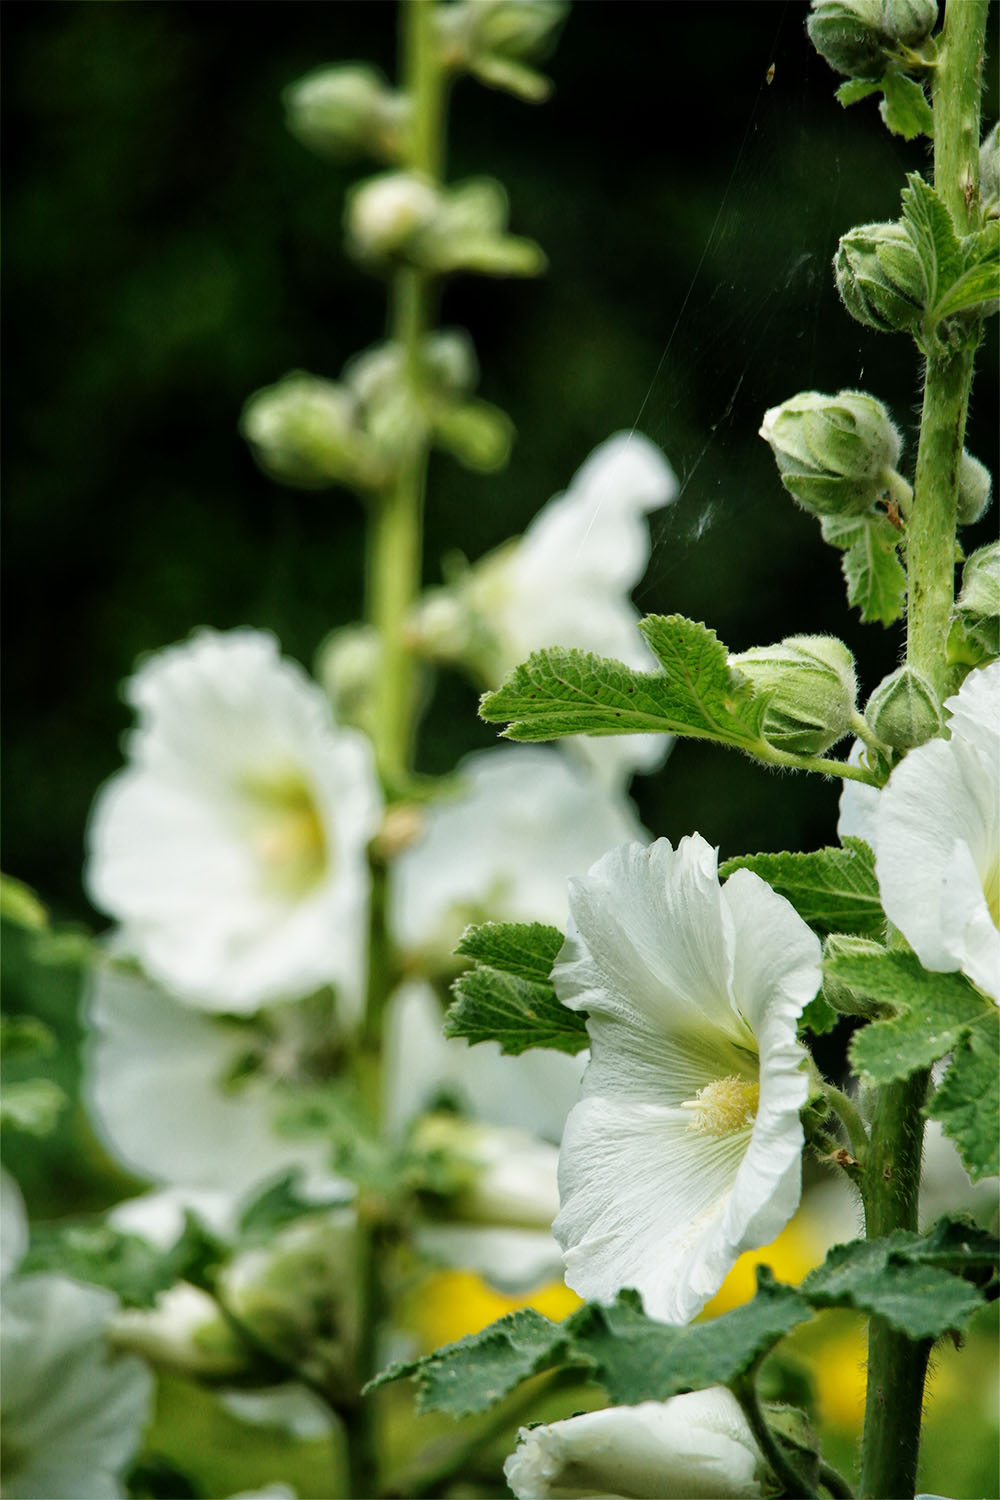 More white Hollyhocks - for me one of the quintessential English Country Garden blooms